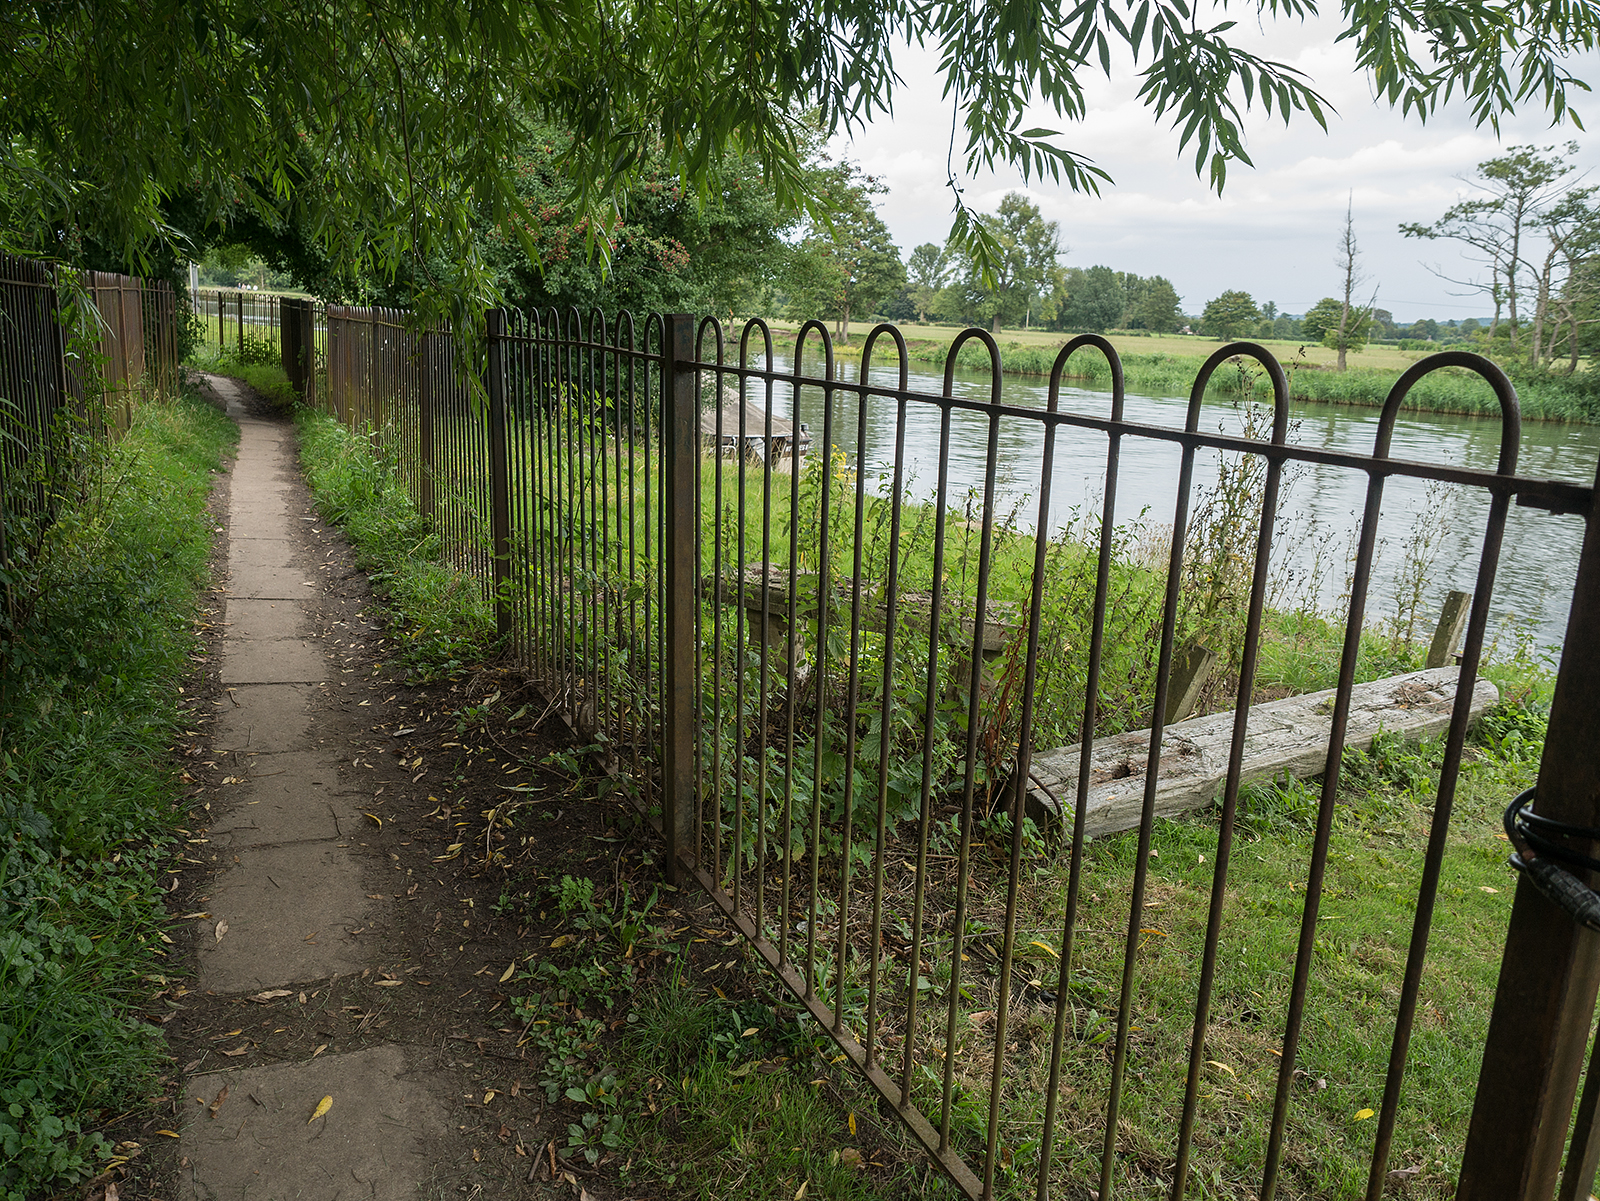 More private riverside areas in Wallingford